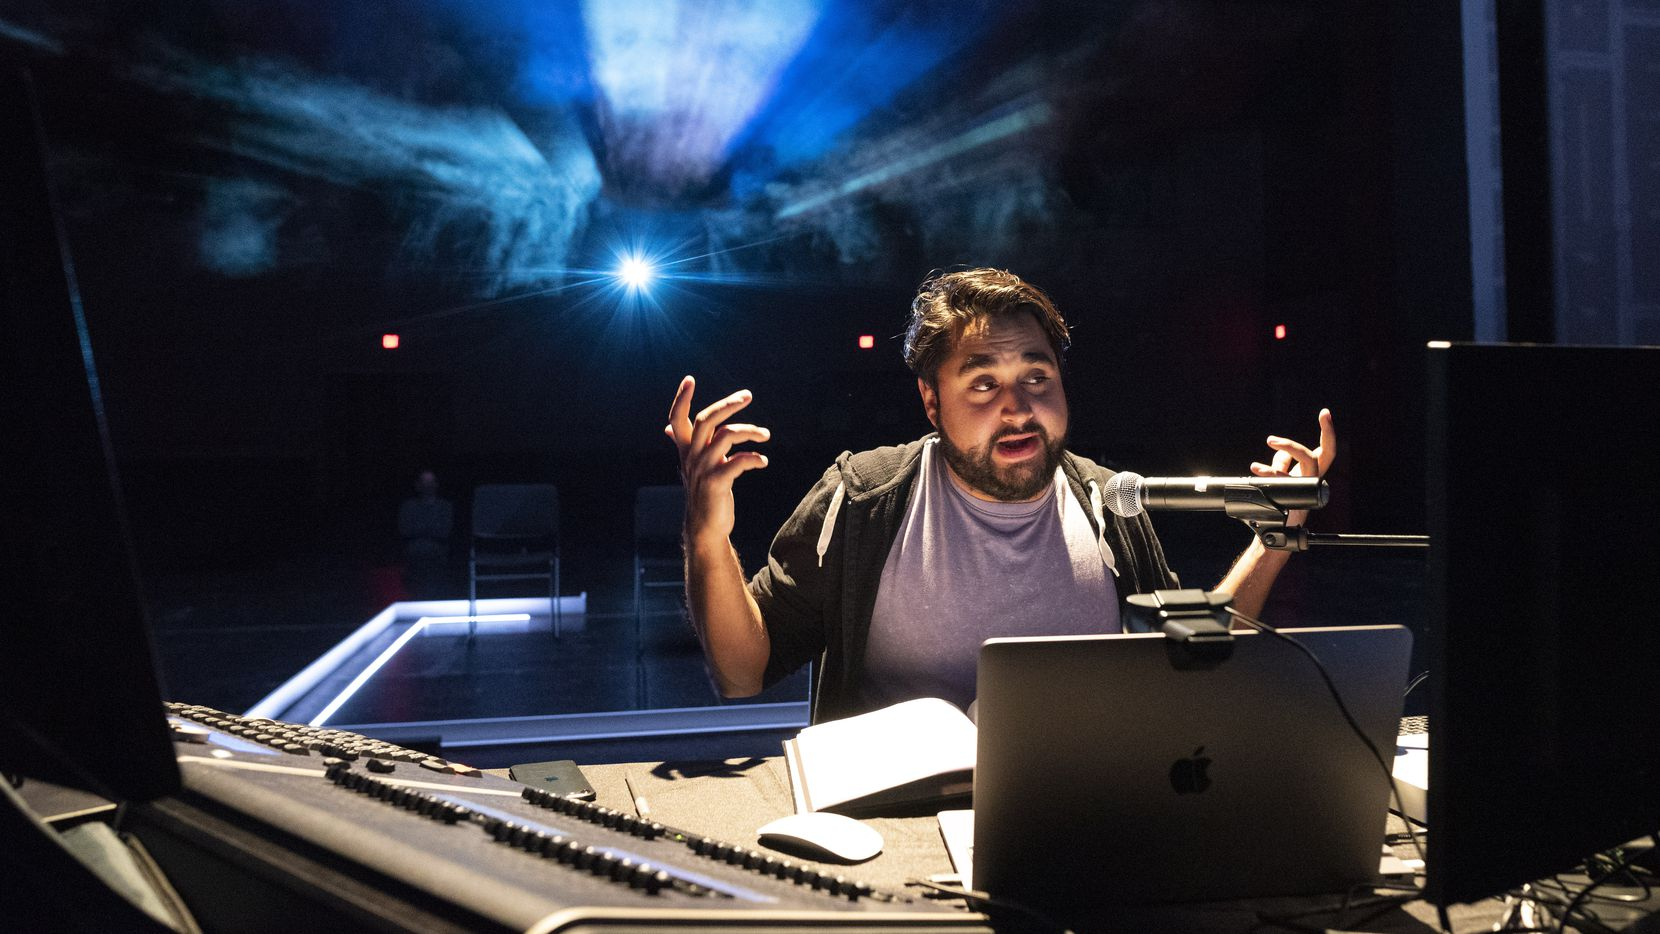 """Ruben Carrazana in """"The Cube,"""" which he wrote, directed and co-conceived earlier this year. Carrazana has since become one of four playwrights commissioned  by Kitchen Dog Theater to write a play for its 2021 New Works Festival. Writer and producer Ruben Carrazana, center, has his image projected on a wall, not pictured, as he speaks during a rehearsal of The Cube: An Interactive Experience For The Socially Distanced Era, takes placewith on Friday, Jan. 15, 2021 at the Latino Cultural Center in Dallas."""